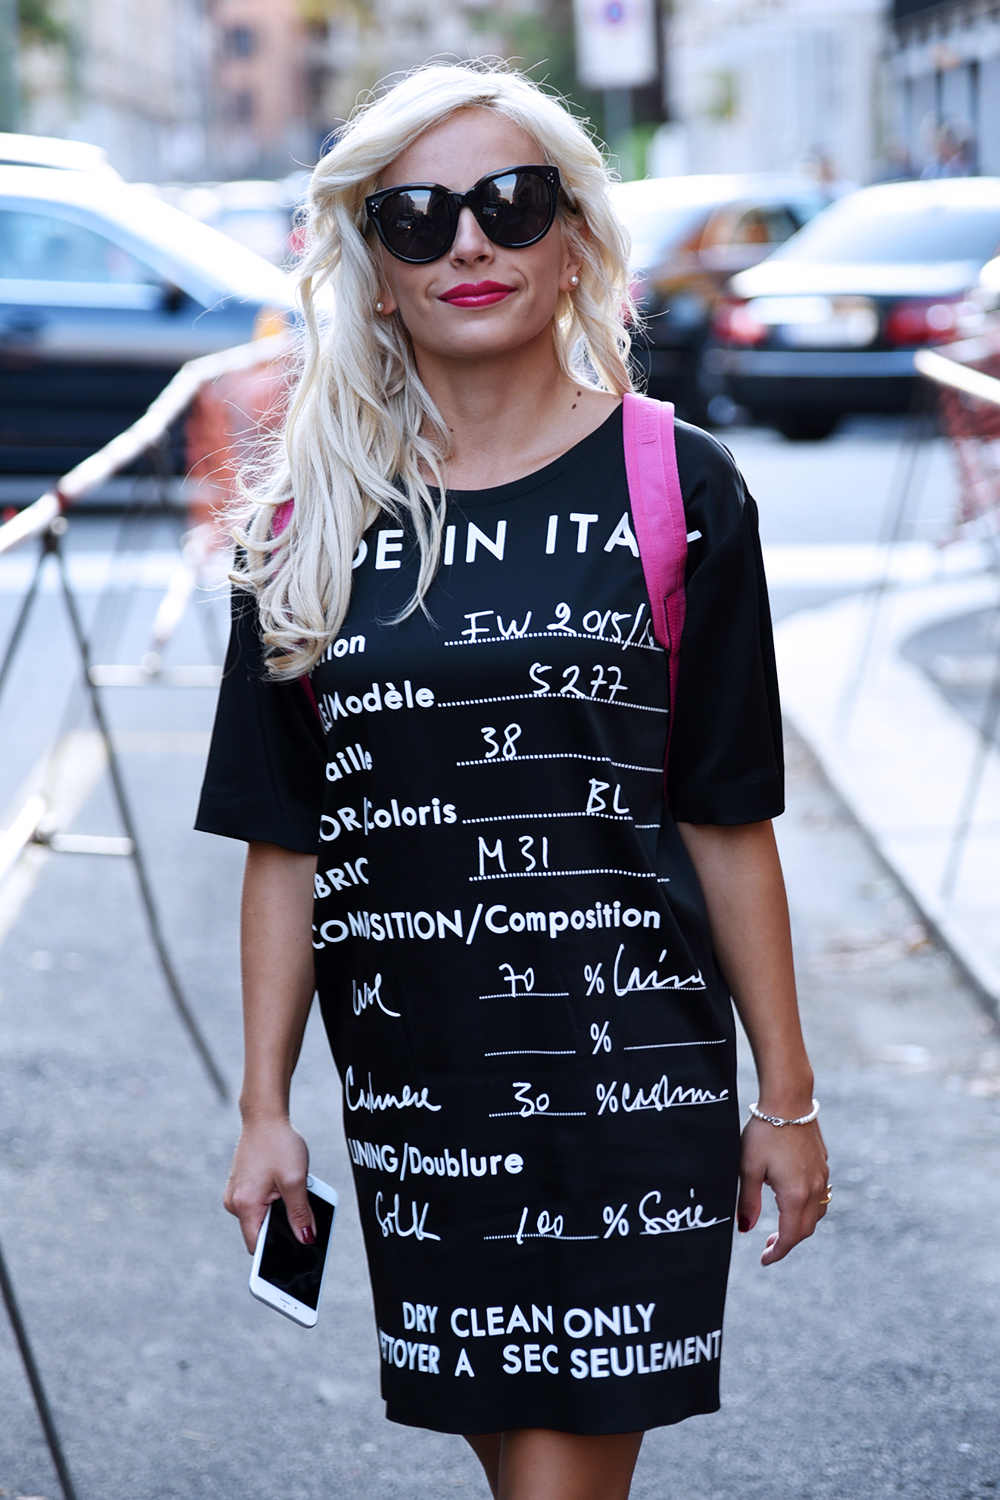 Moschino vestiti prezzo, Agnetti boutique, Moschino collezione autunno inverno 2015 2016, zaino Moschino, borse Moschino - outfit fall 2015 fashion blogger It-Girl by Eleonora Petrella